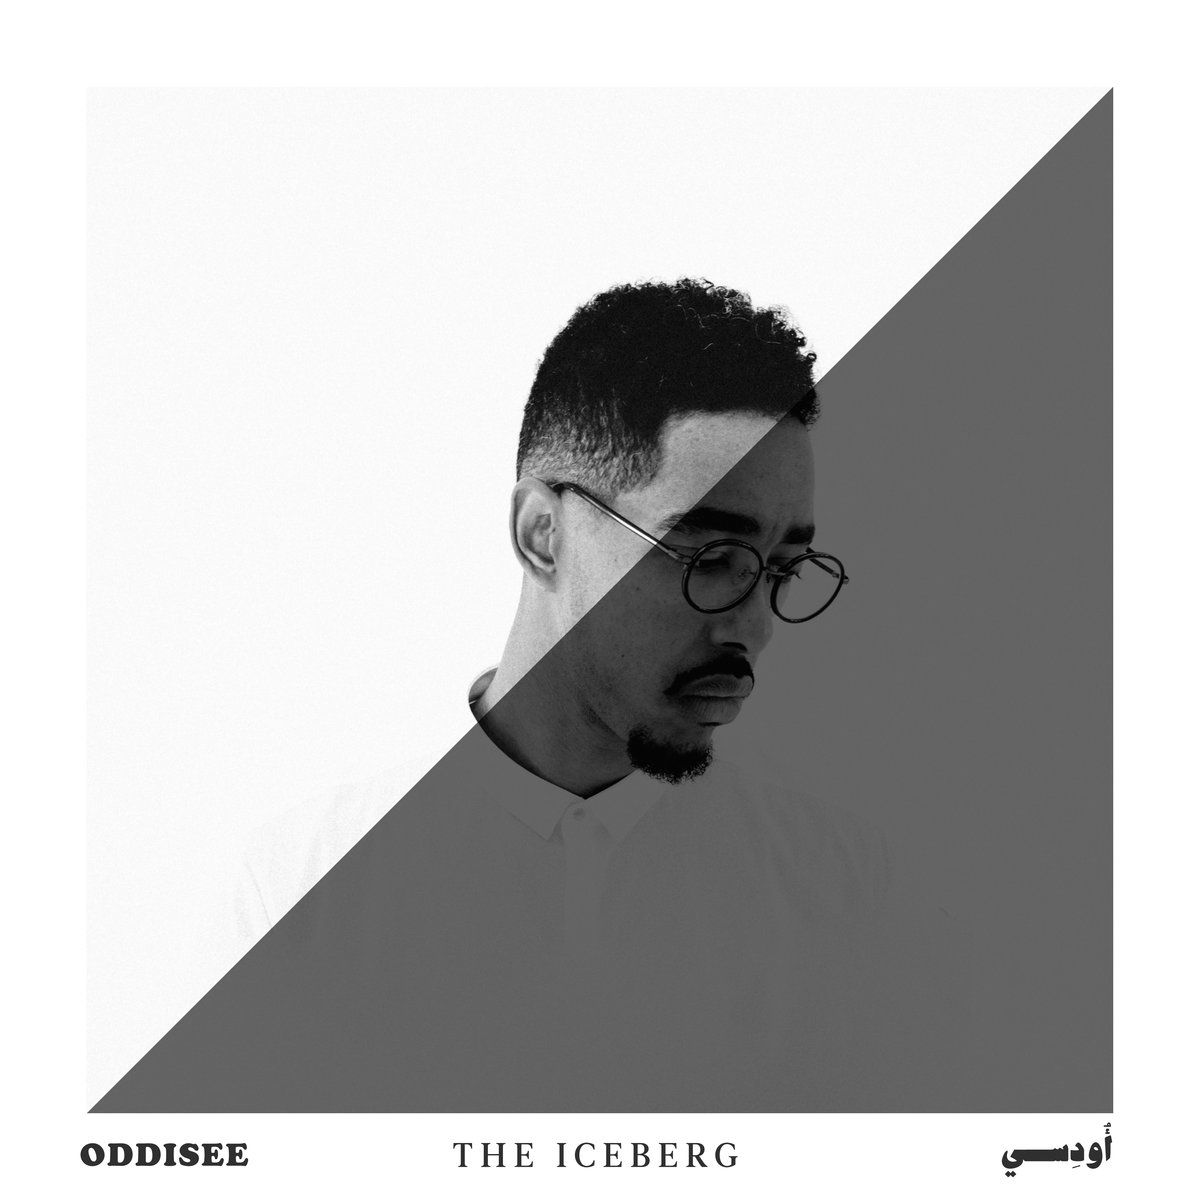 Listen: Oddisee's new album 'The Iceberg'